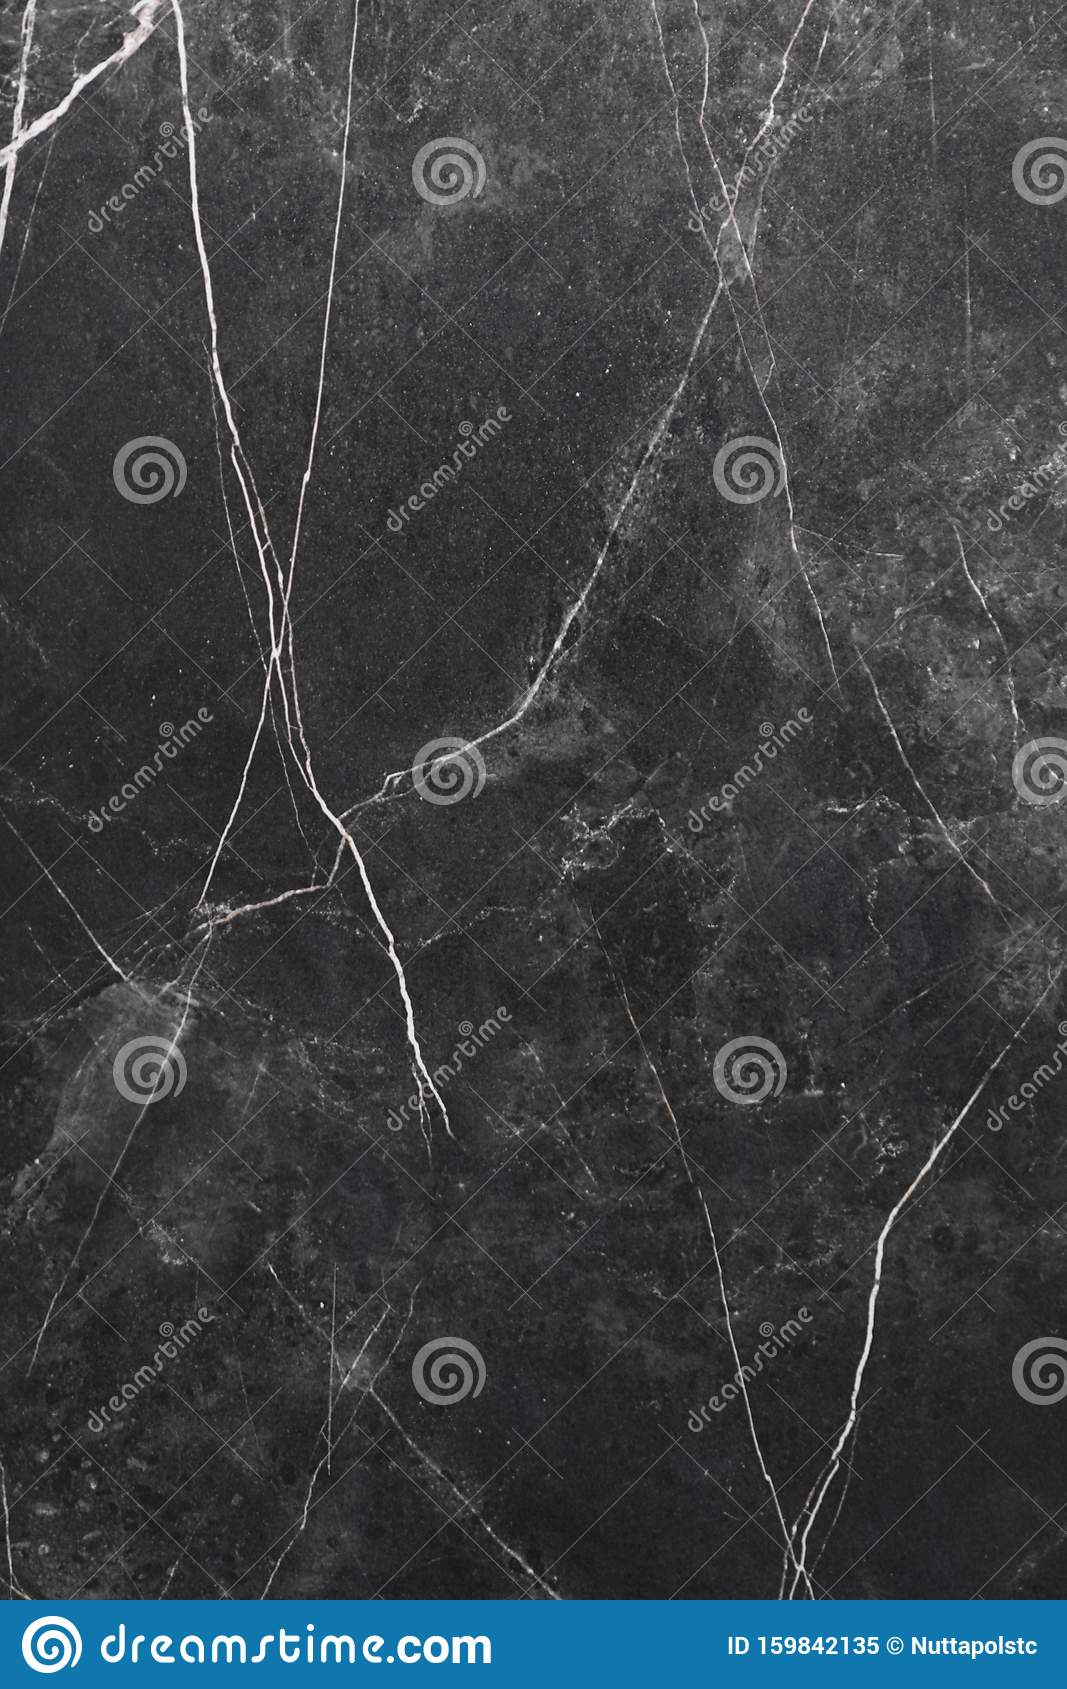 Black Marble Texture Seamless : black, marble, texture, seamless, Black, Marble, Texture, Abstract, Background, Pattern, Resolution, Interior, Design, Seamless, Stock, Image, Abstract,, Backdrop:, 159842135